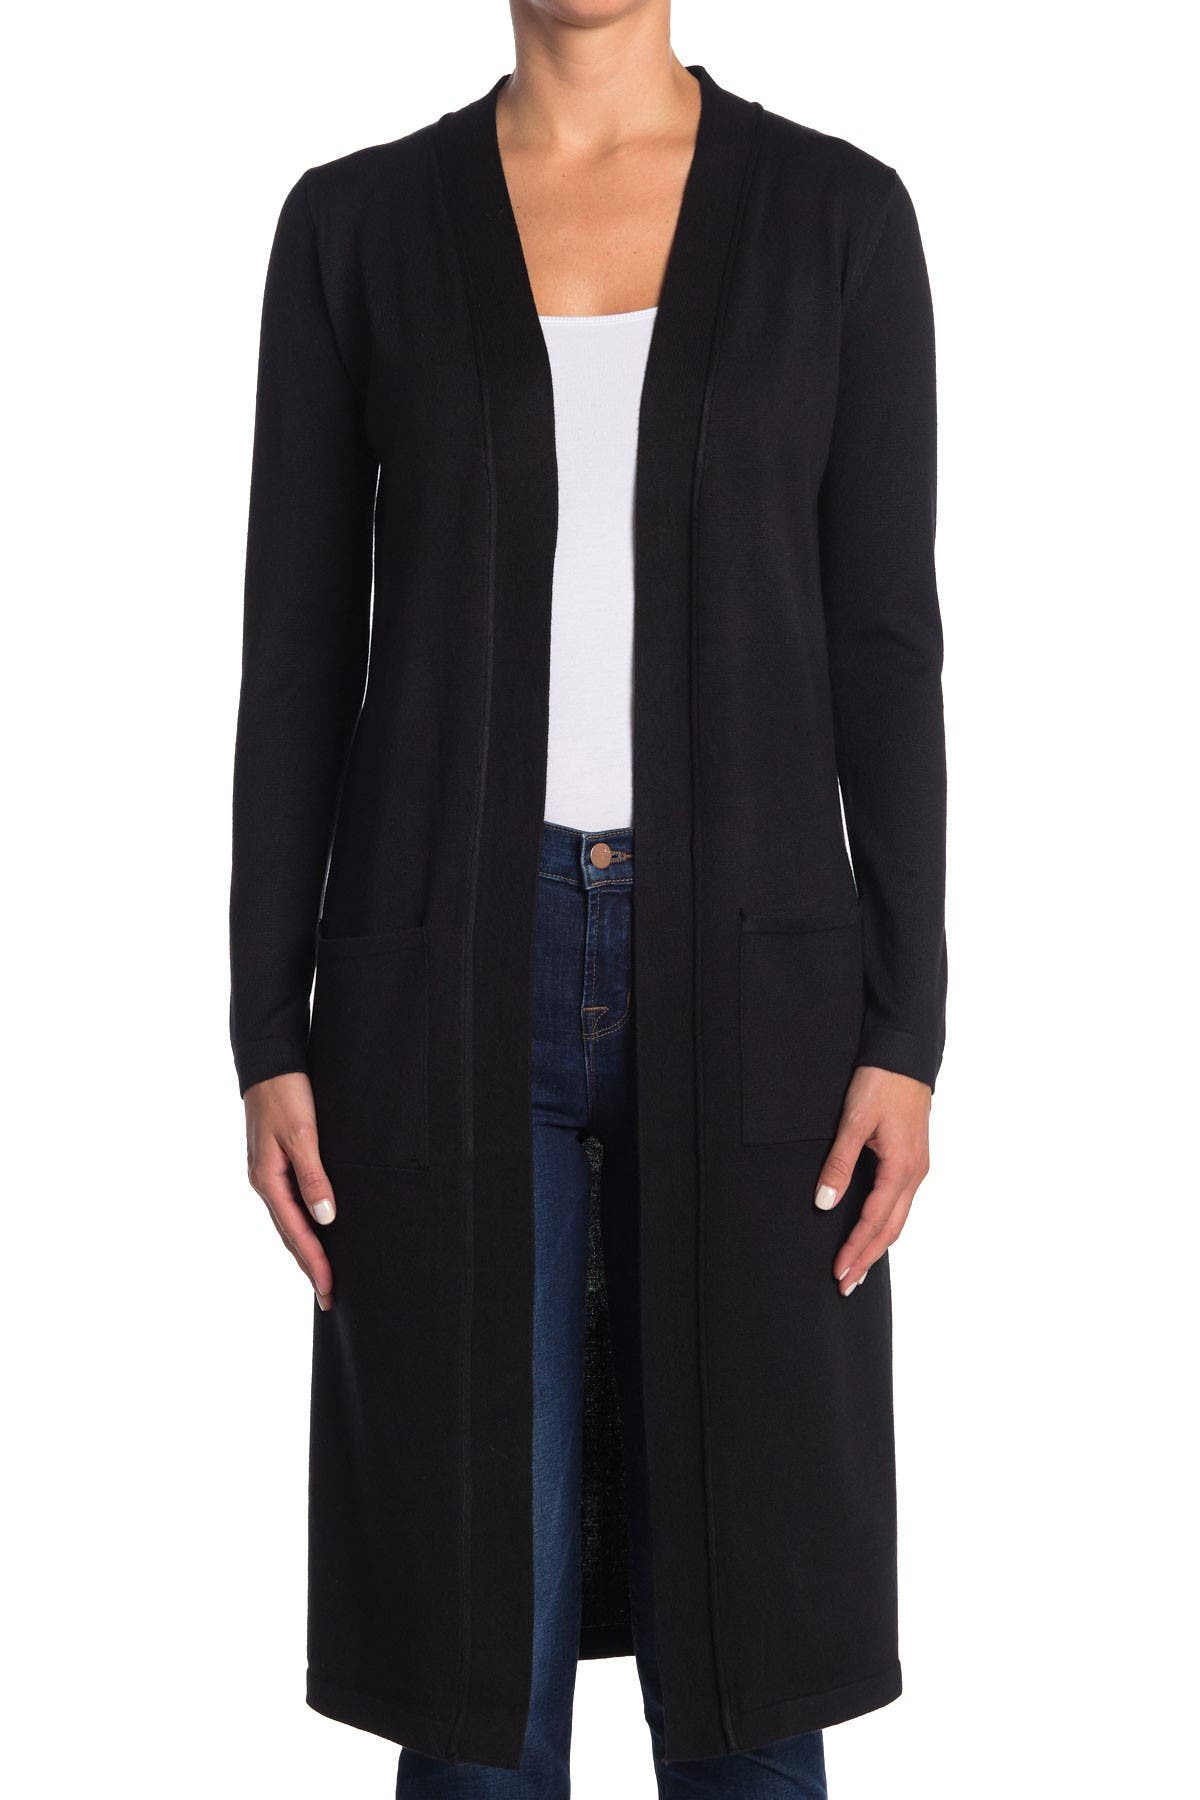 Image of M Magaschoni Long Sleeve Open Duster Cardigan